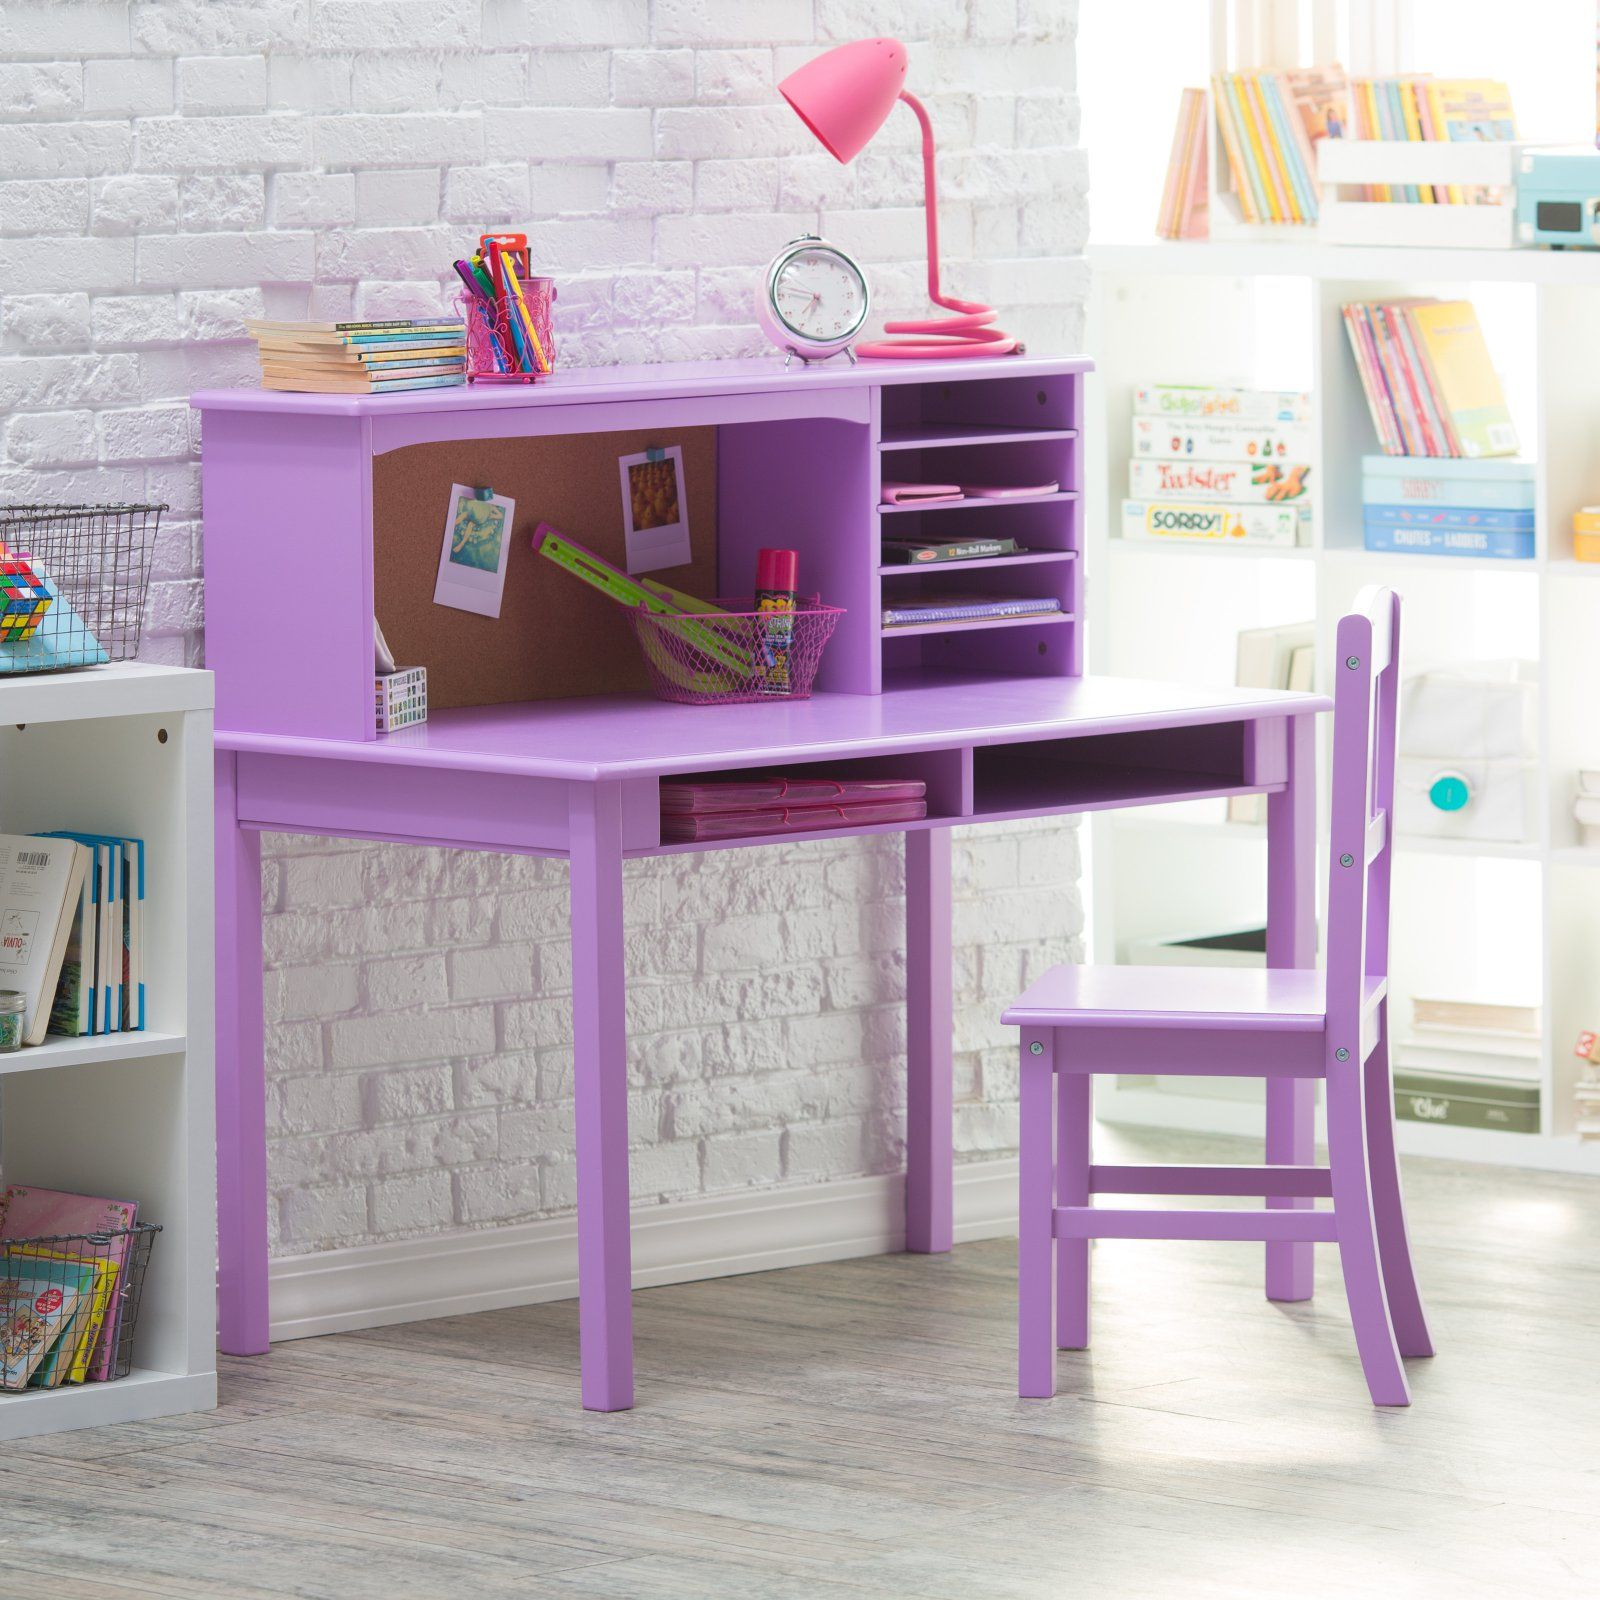 Guidecraft Media Desk Chair Set Lavender Walmart Com Desk And Chair Set Kids Corner Desk Kids Study Desk